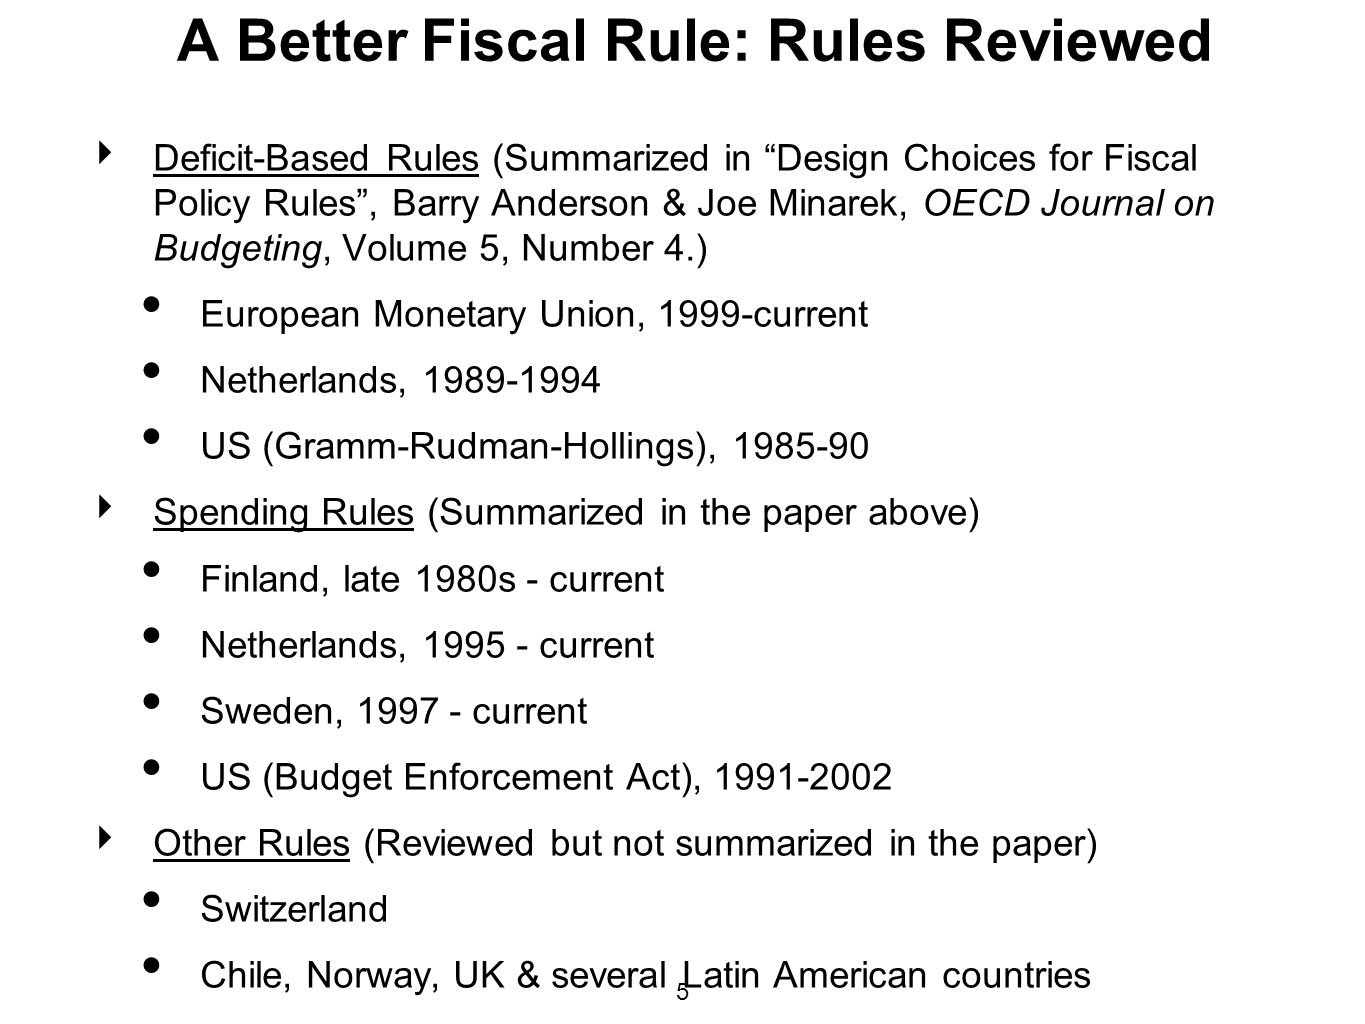 A Better Fiscal Rule: Rules Reviewed